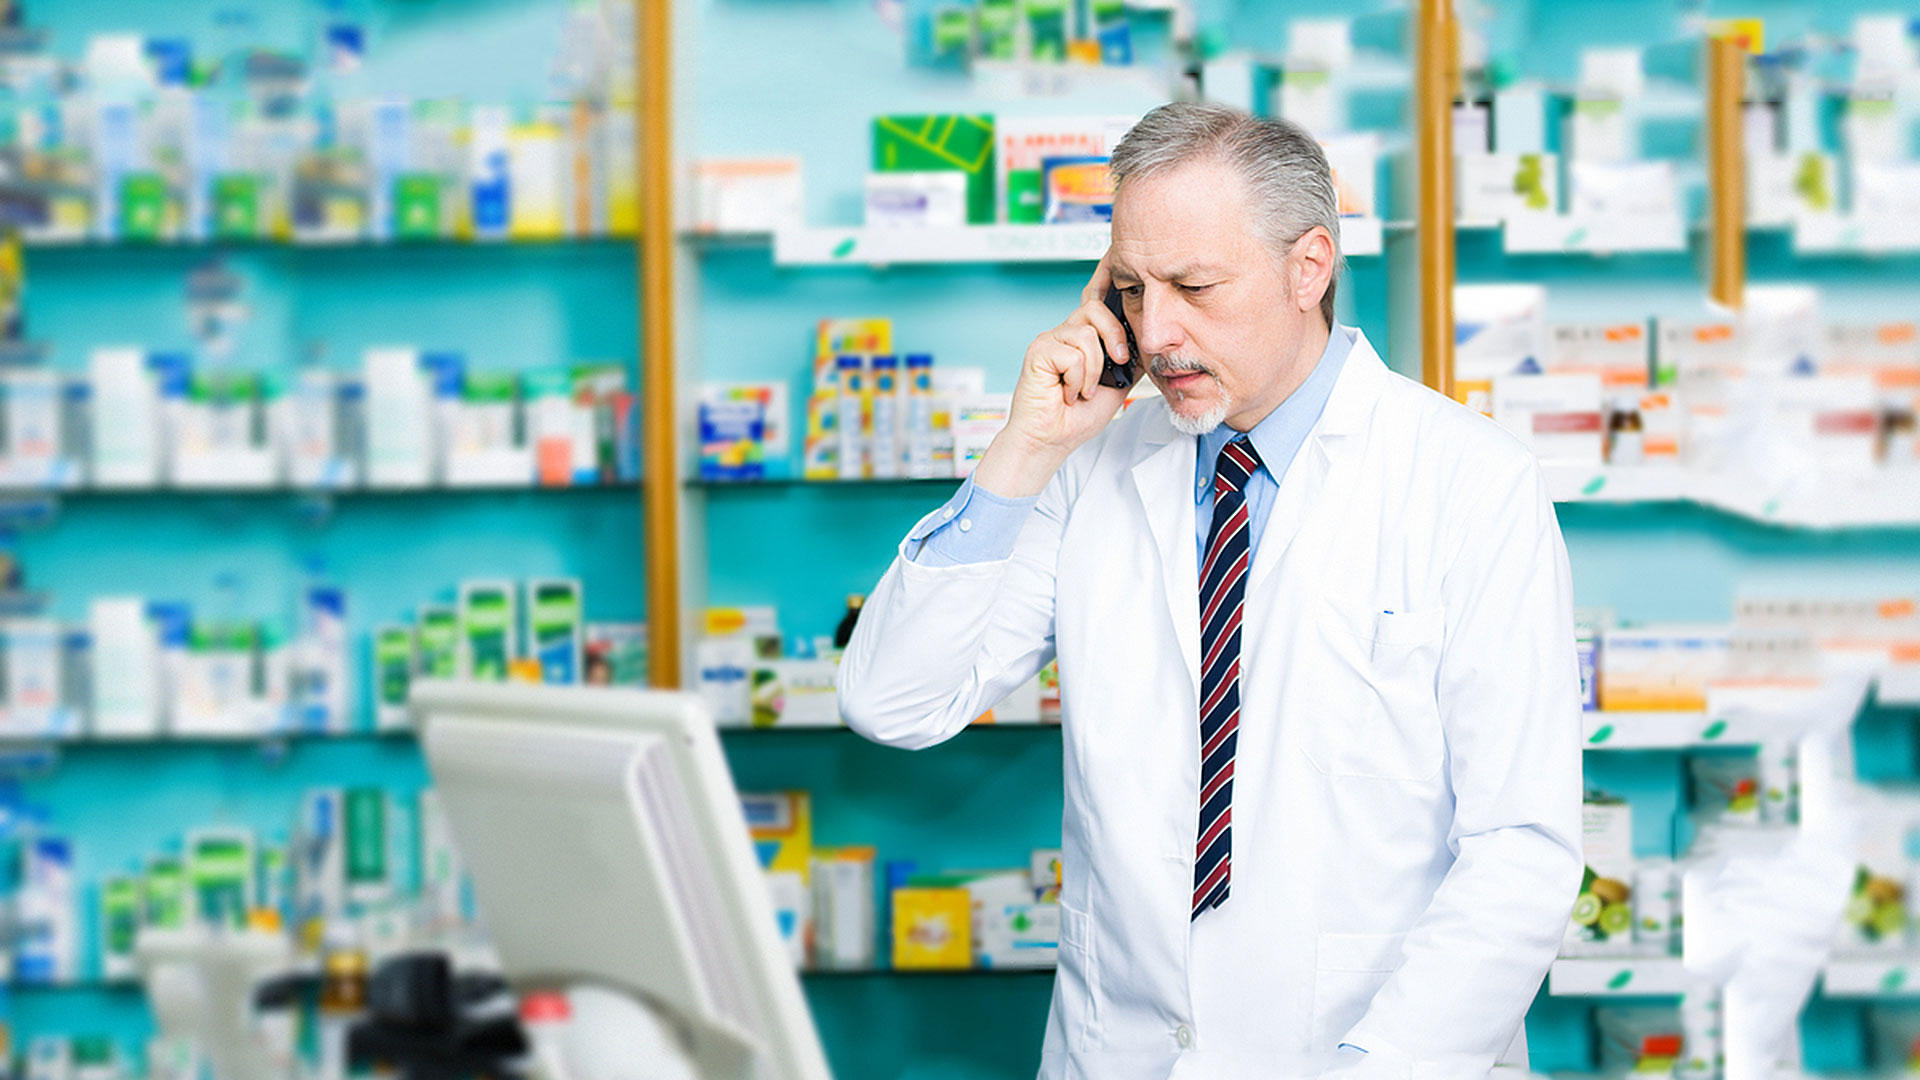 Pharmacist on the phone in front of a computer